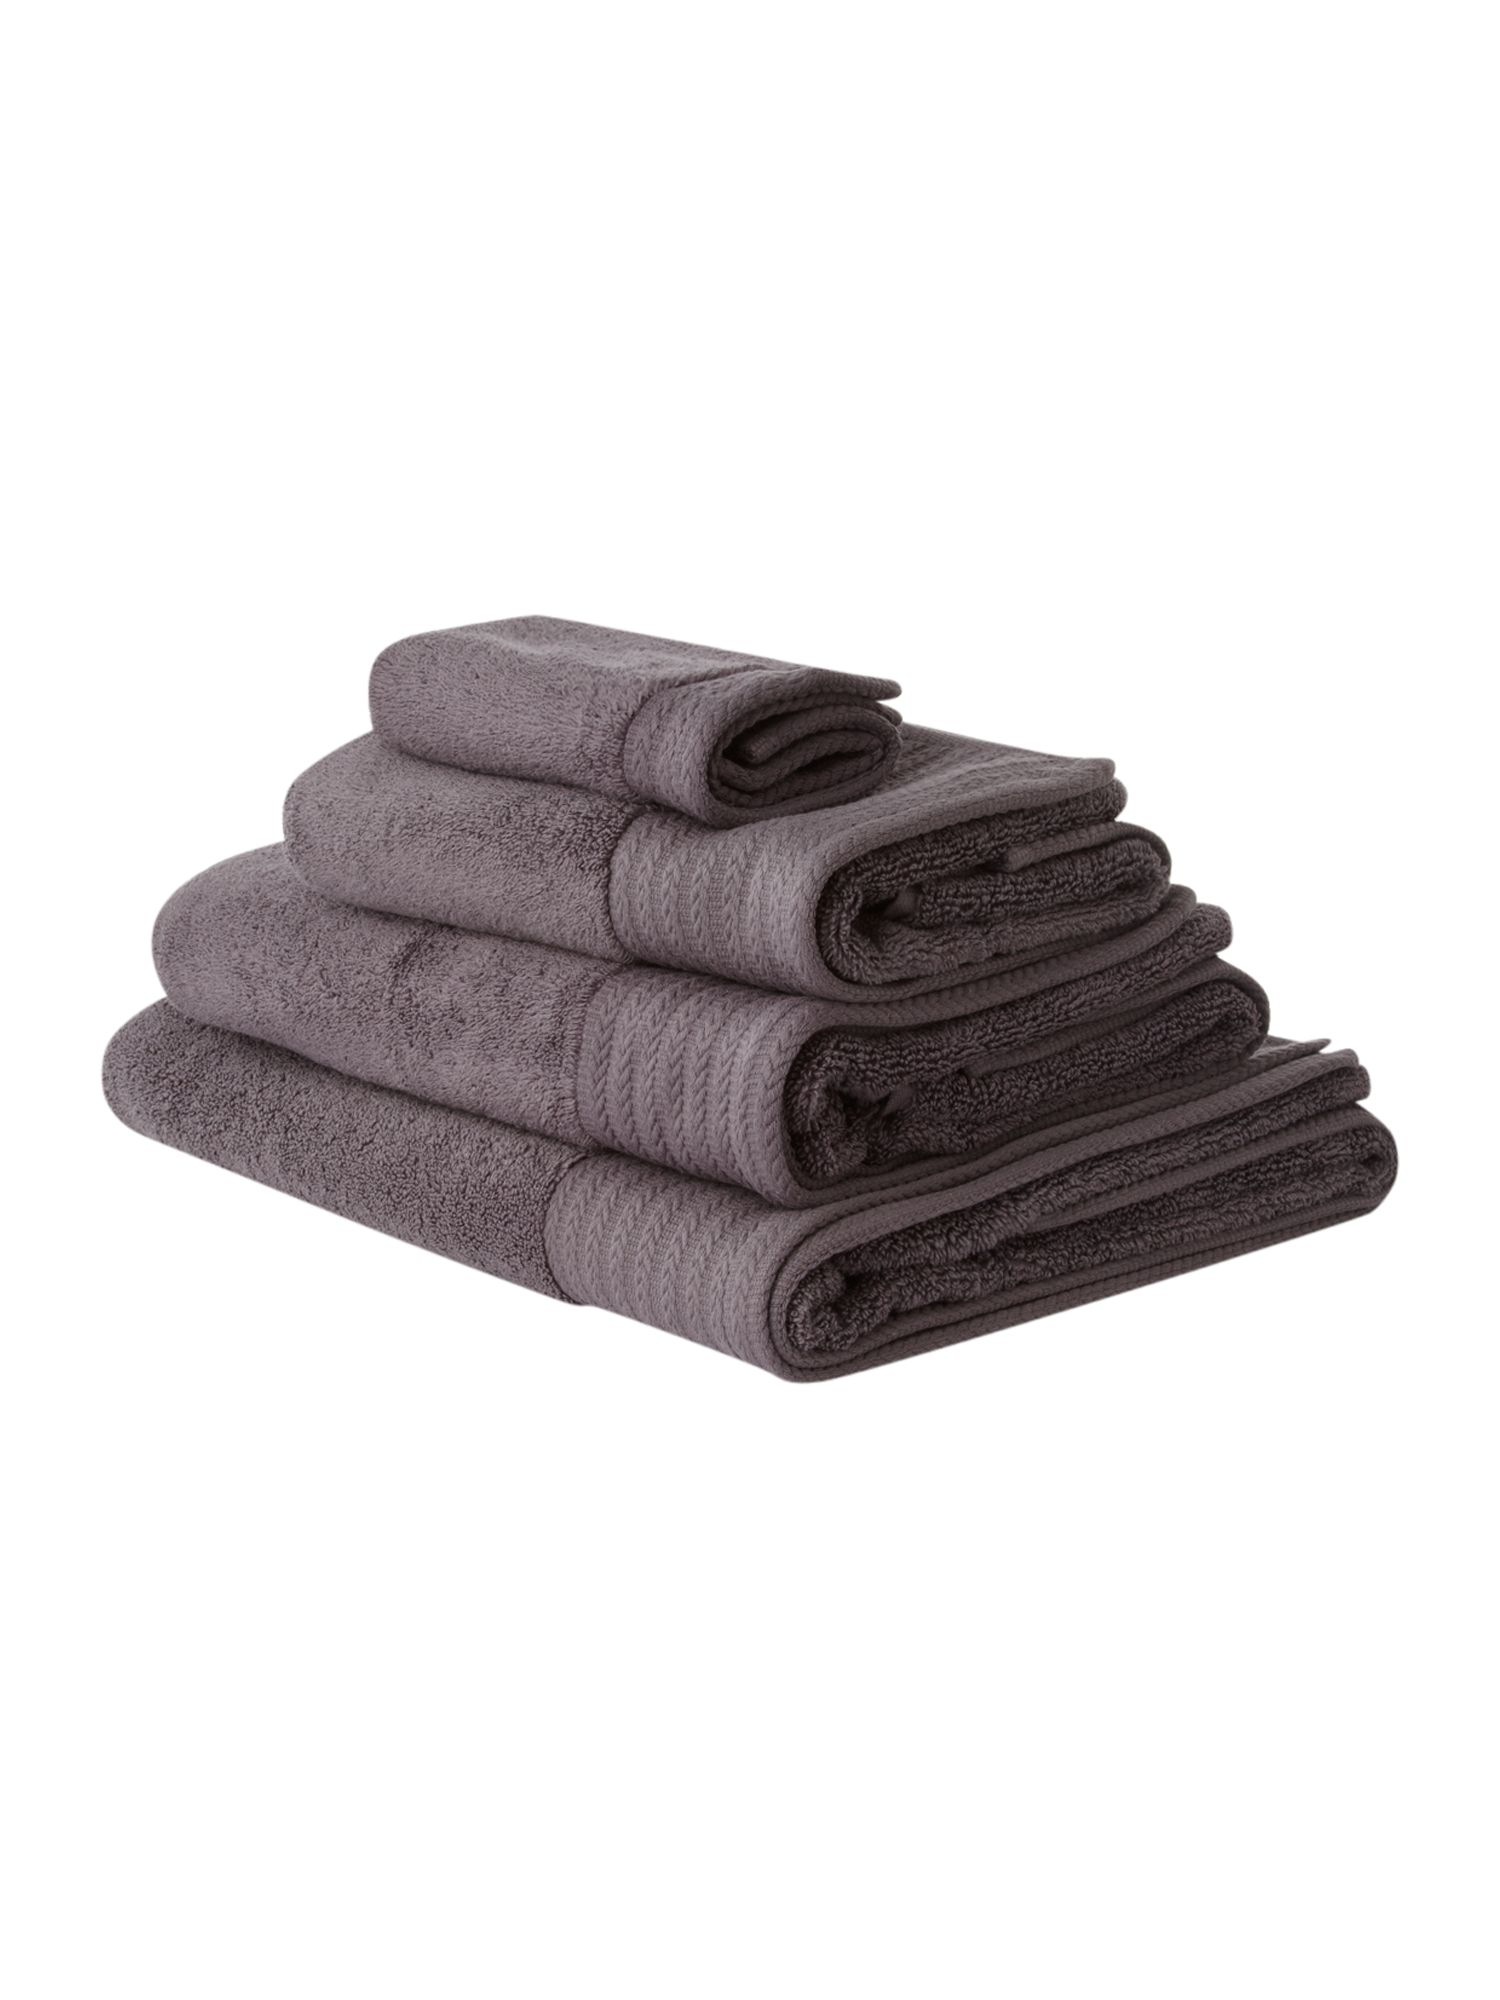 Zero twist bath towels in pewter